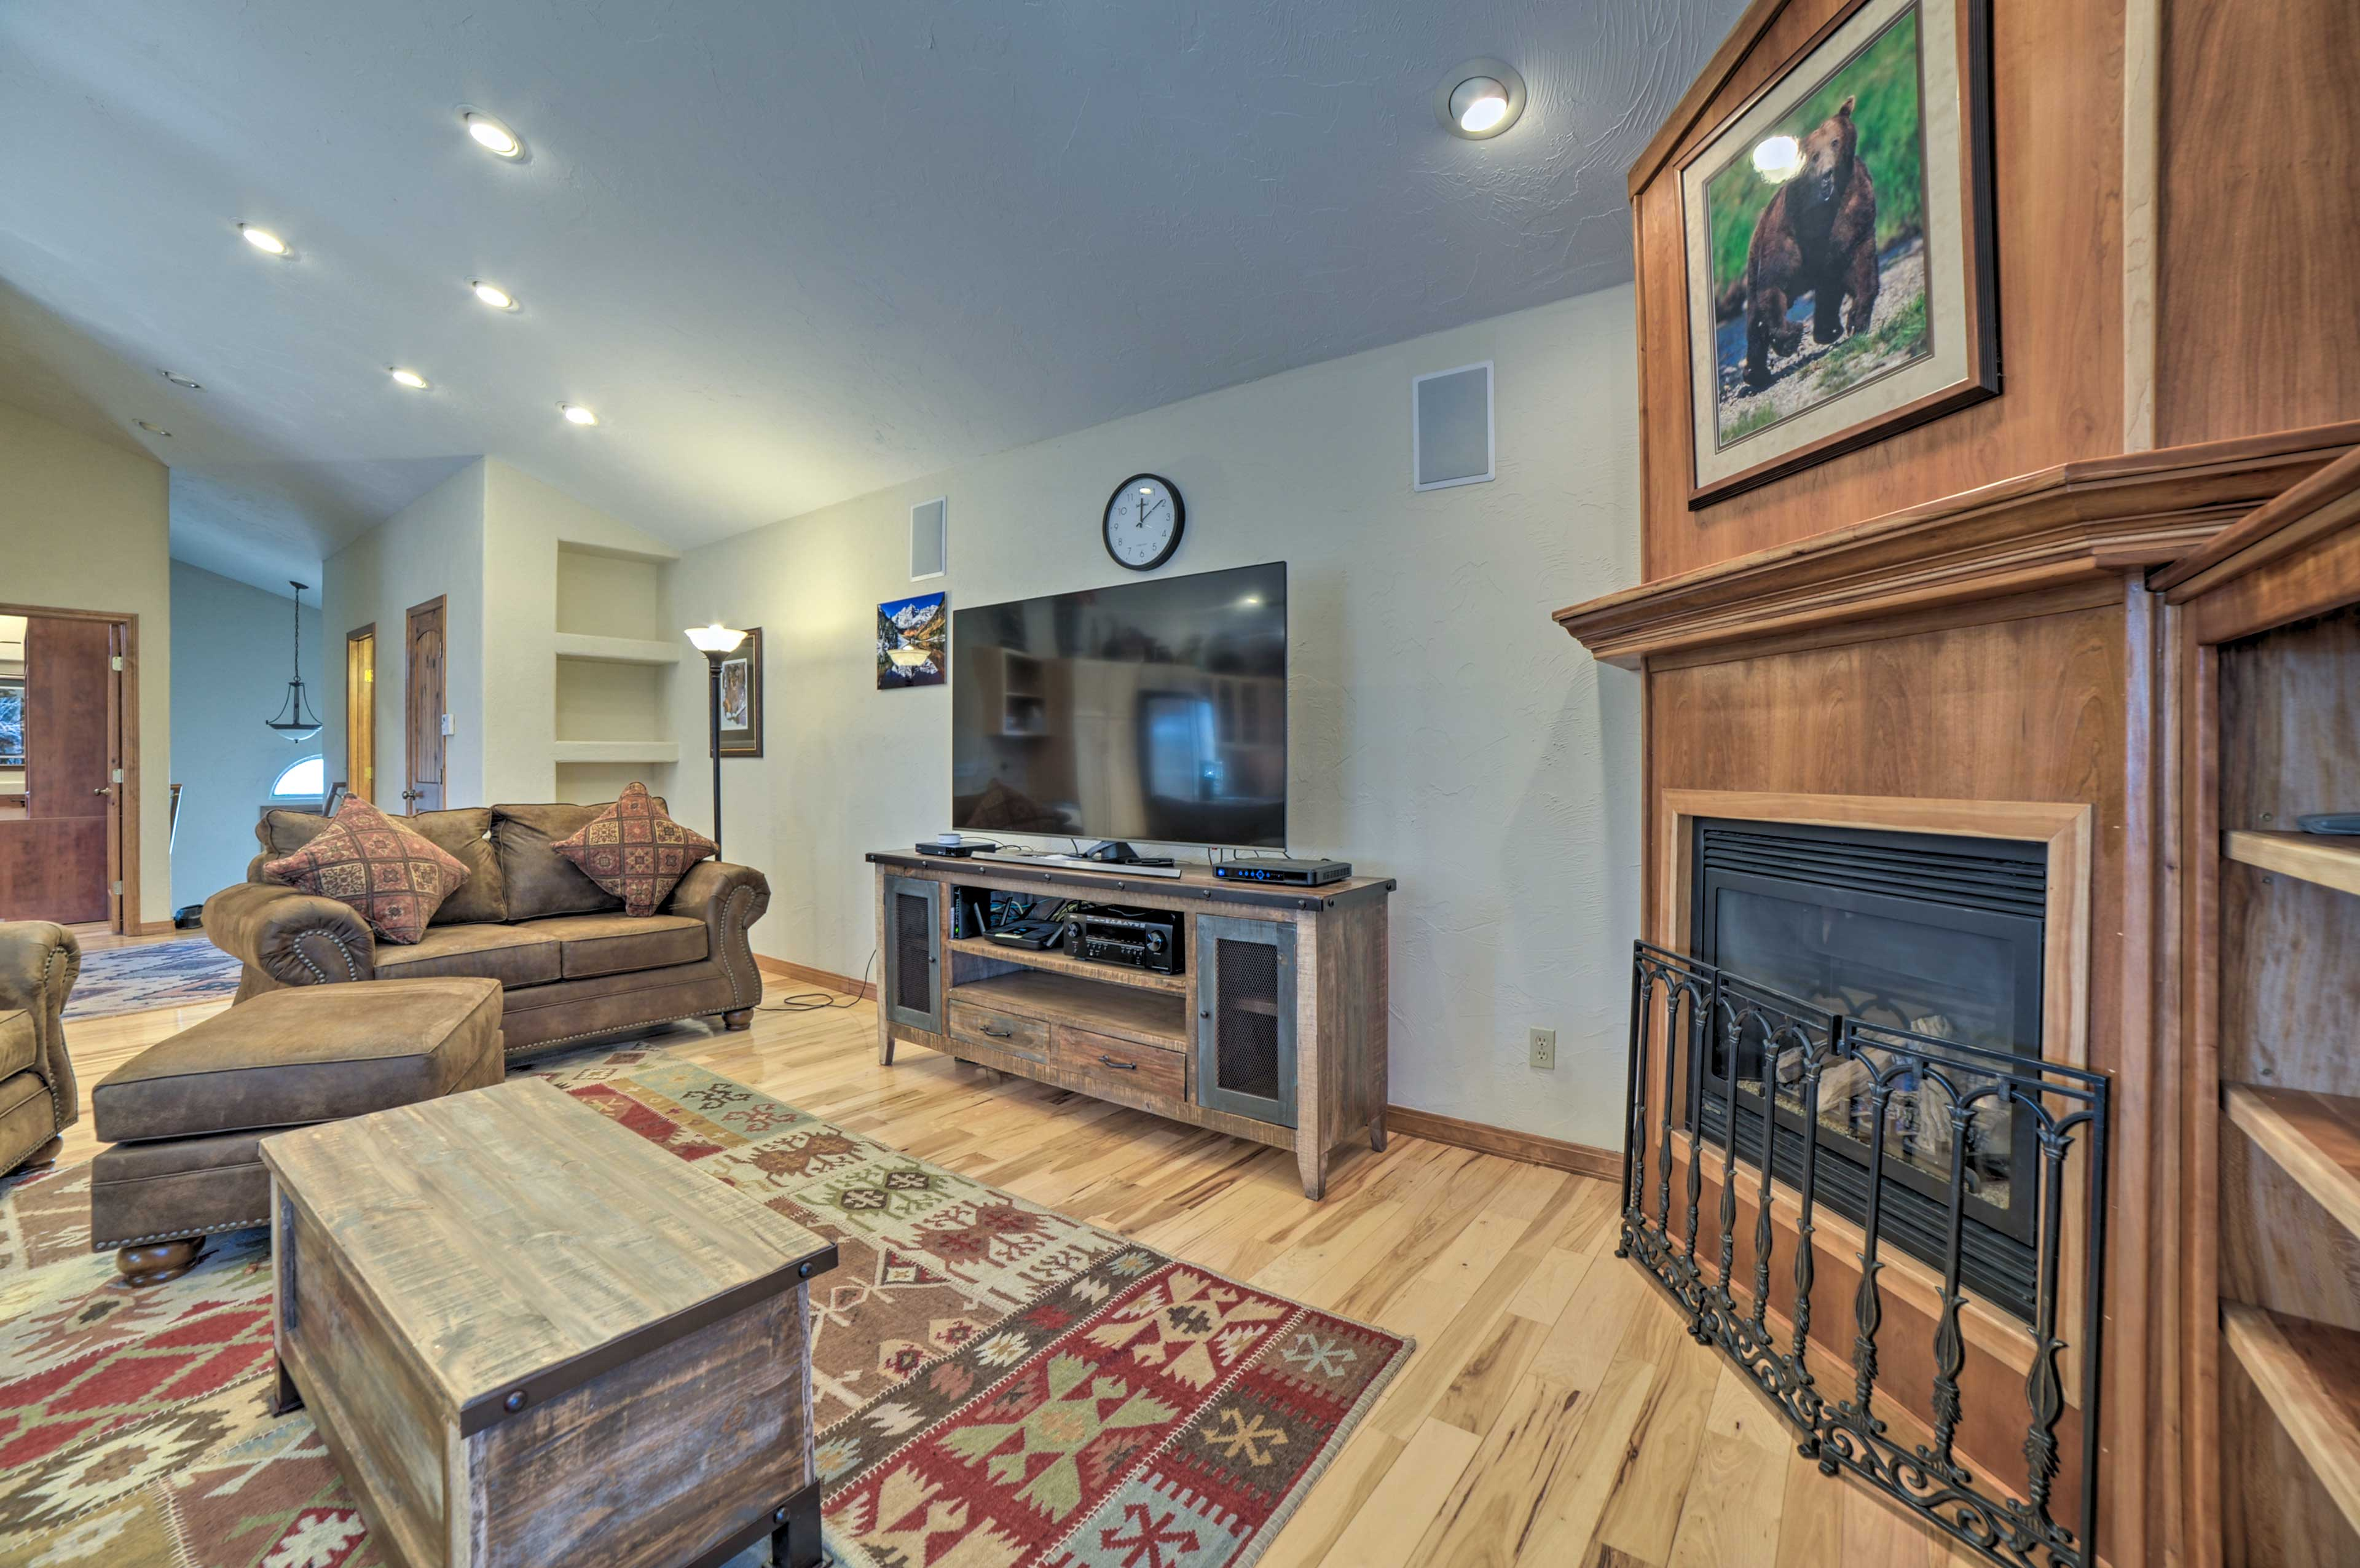 Light the gas fireplace and watch a show on the flat-screen DIRECTV.